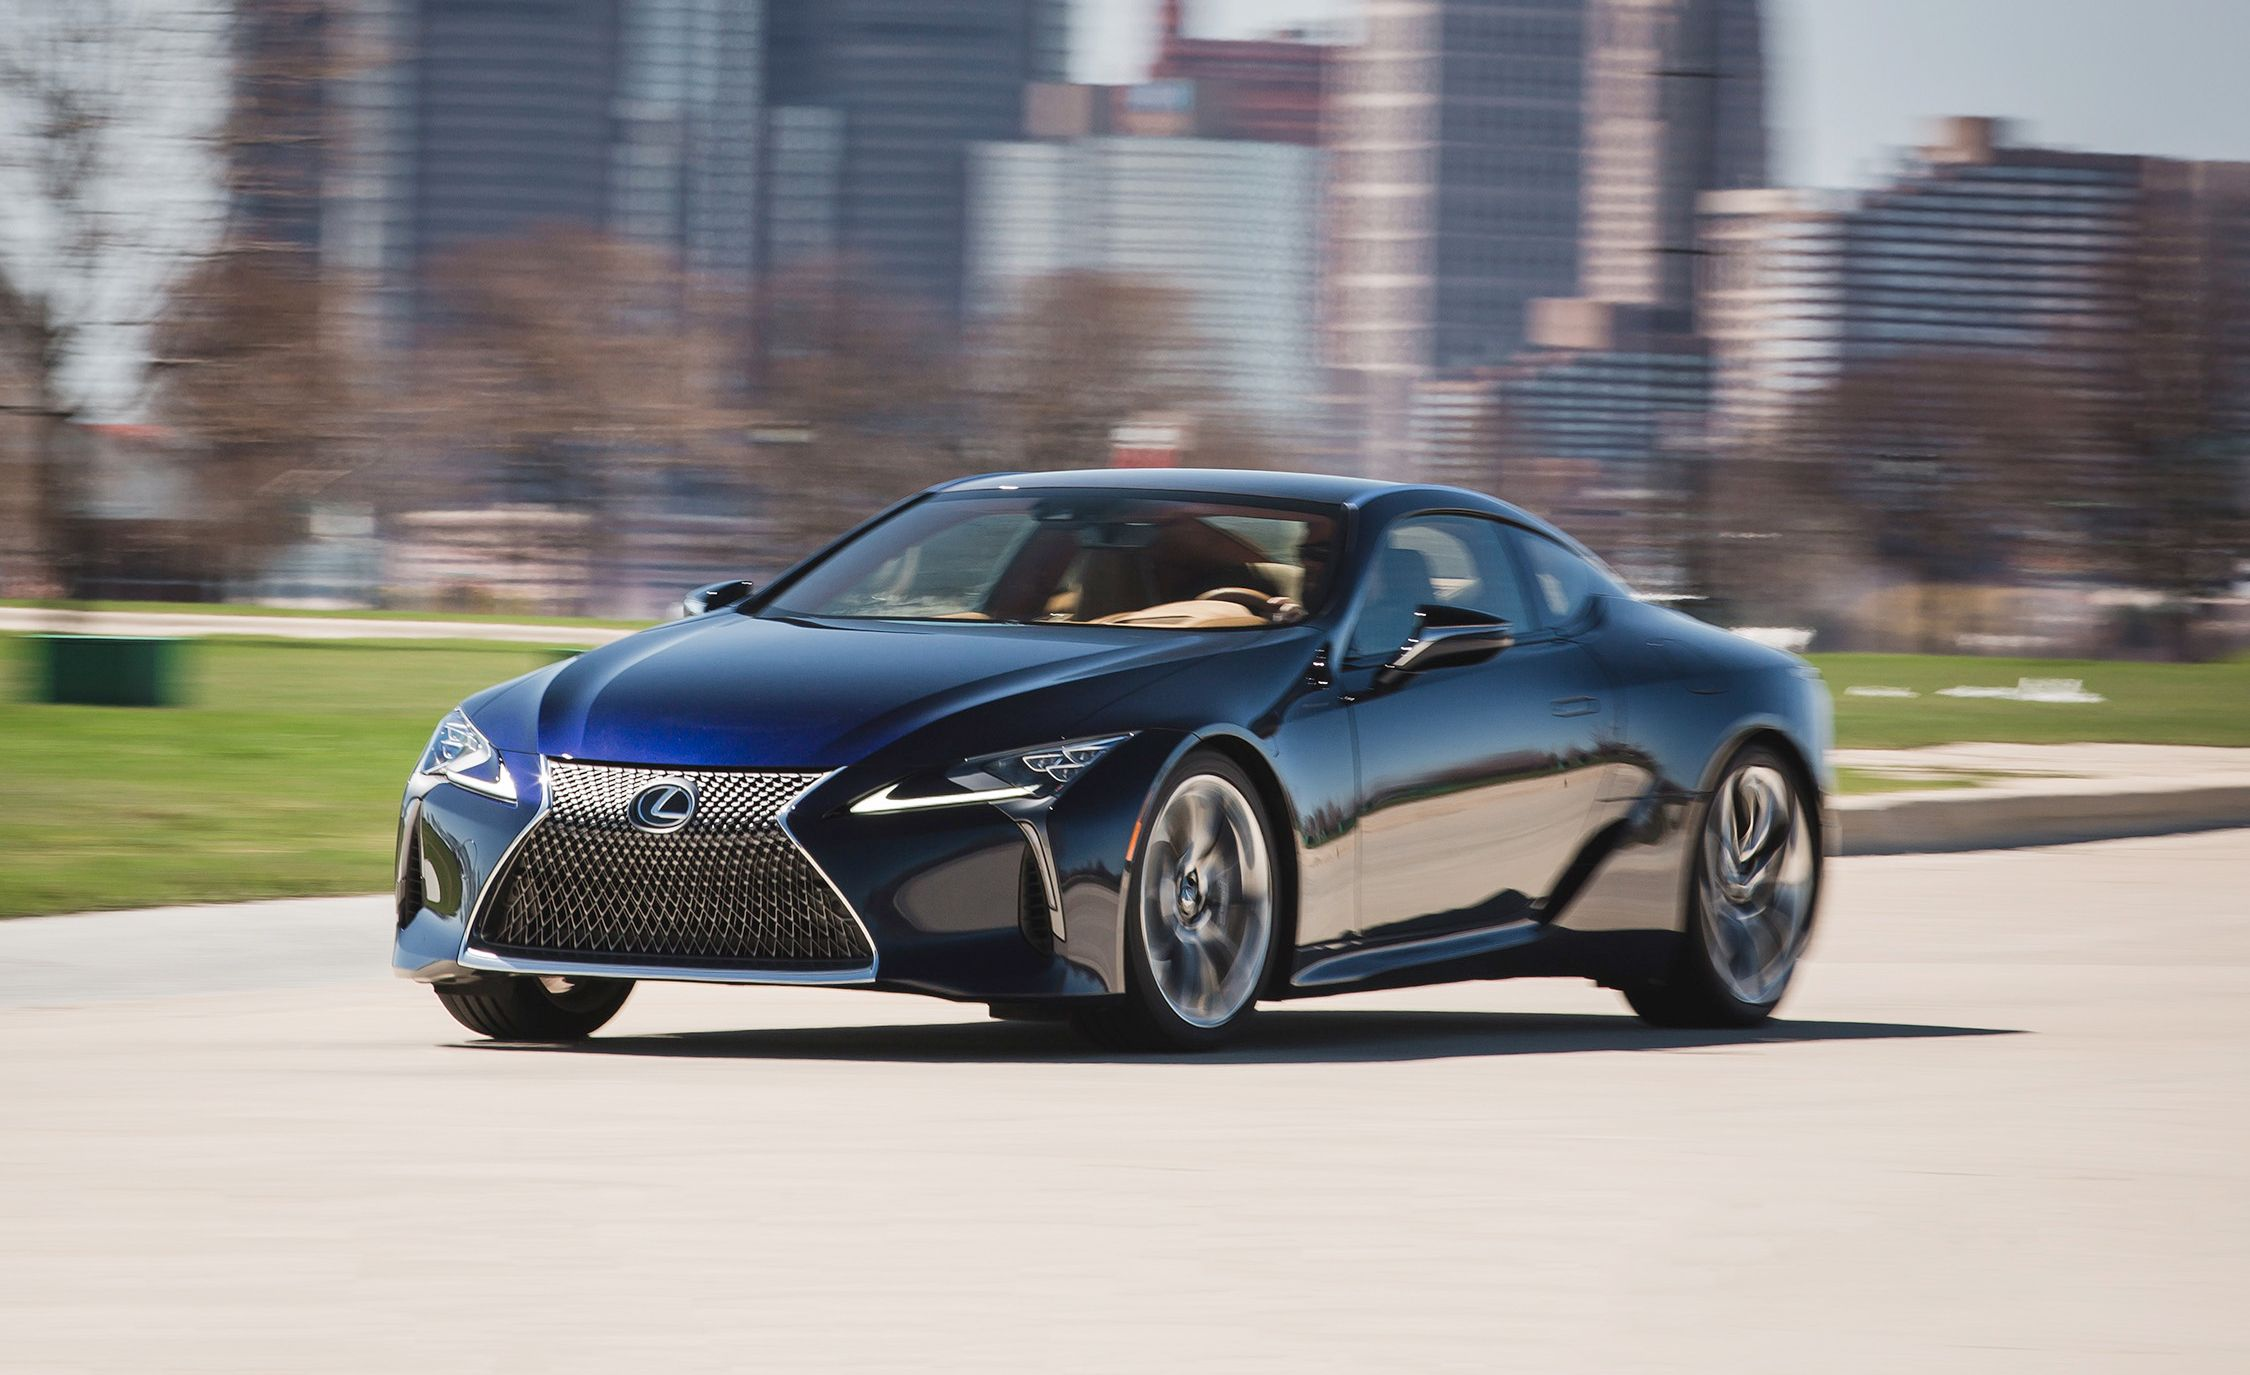 2018 Lexus LC500 Pictures | Photo Gallery | Car and Driver